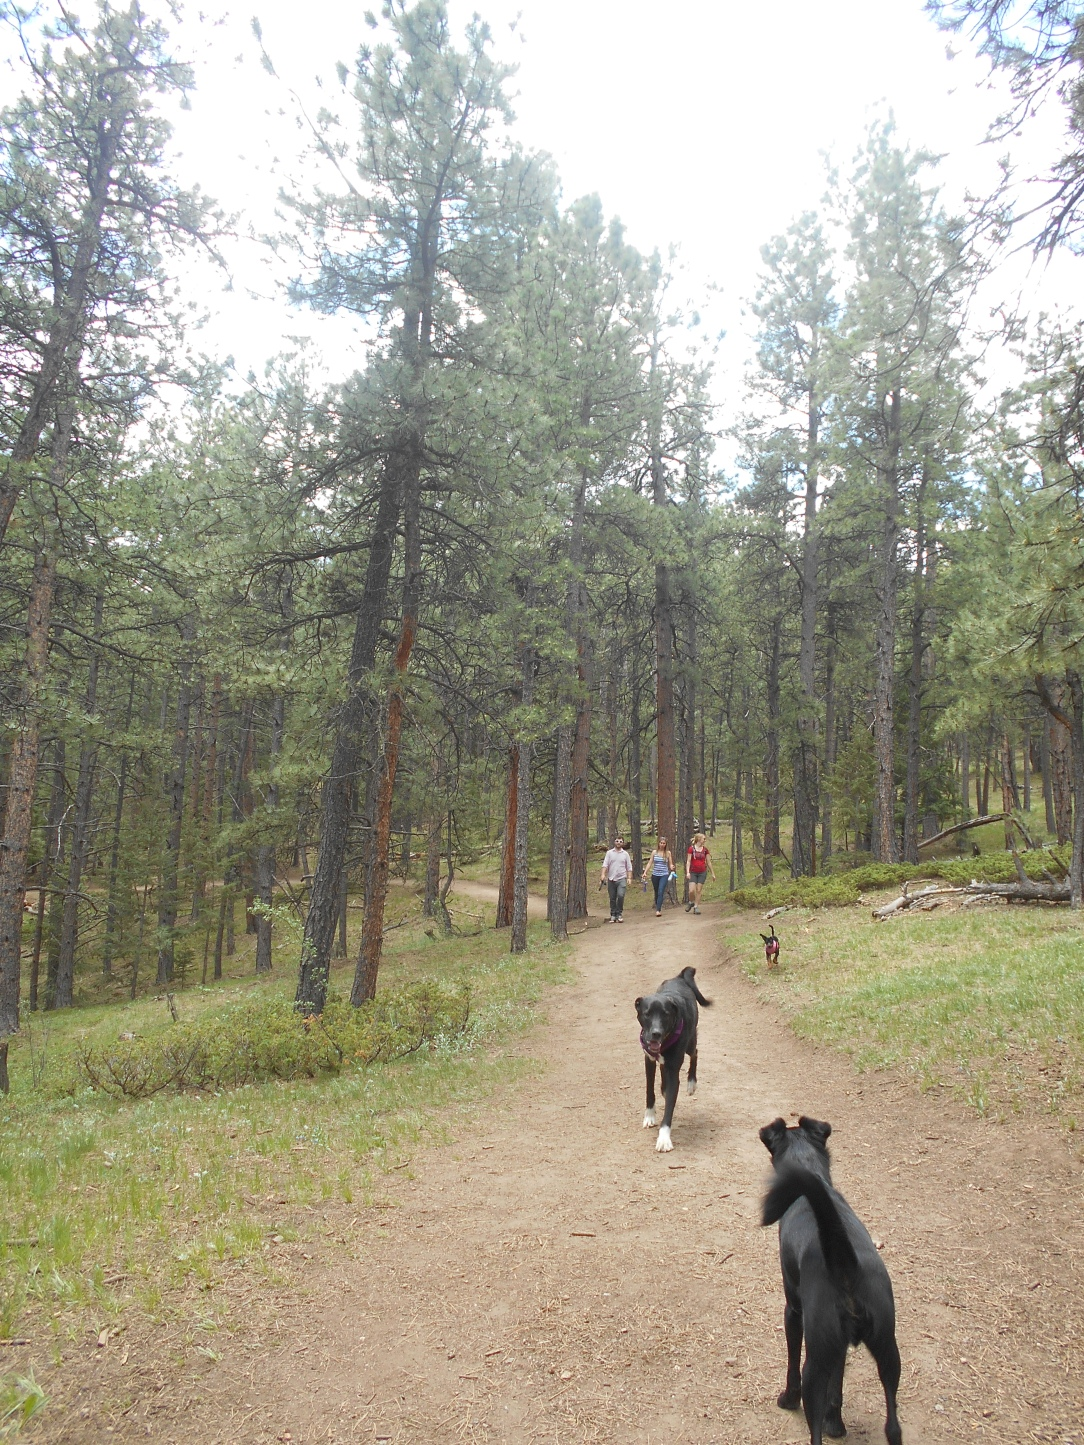 Hangin' with other dogs on the trail